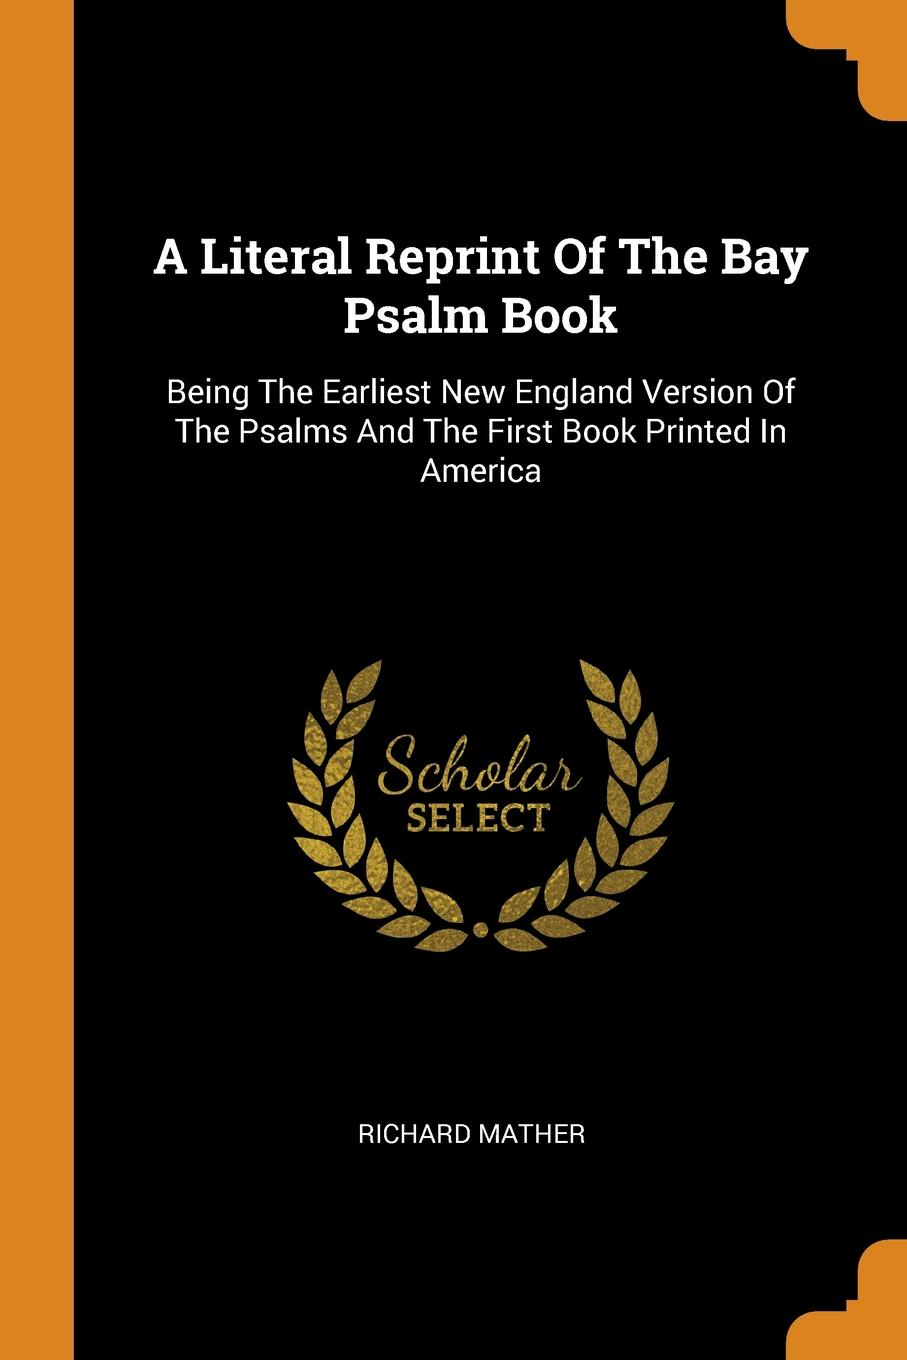 Richard Mather A Literal Reprint Of The Bay Psalm Book. Being The Earliest New England Version Of The Psalms And The First Book Printed In America richard mather a literal reprint of the bay psalm book